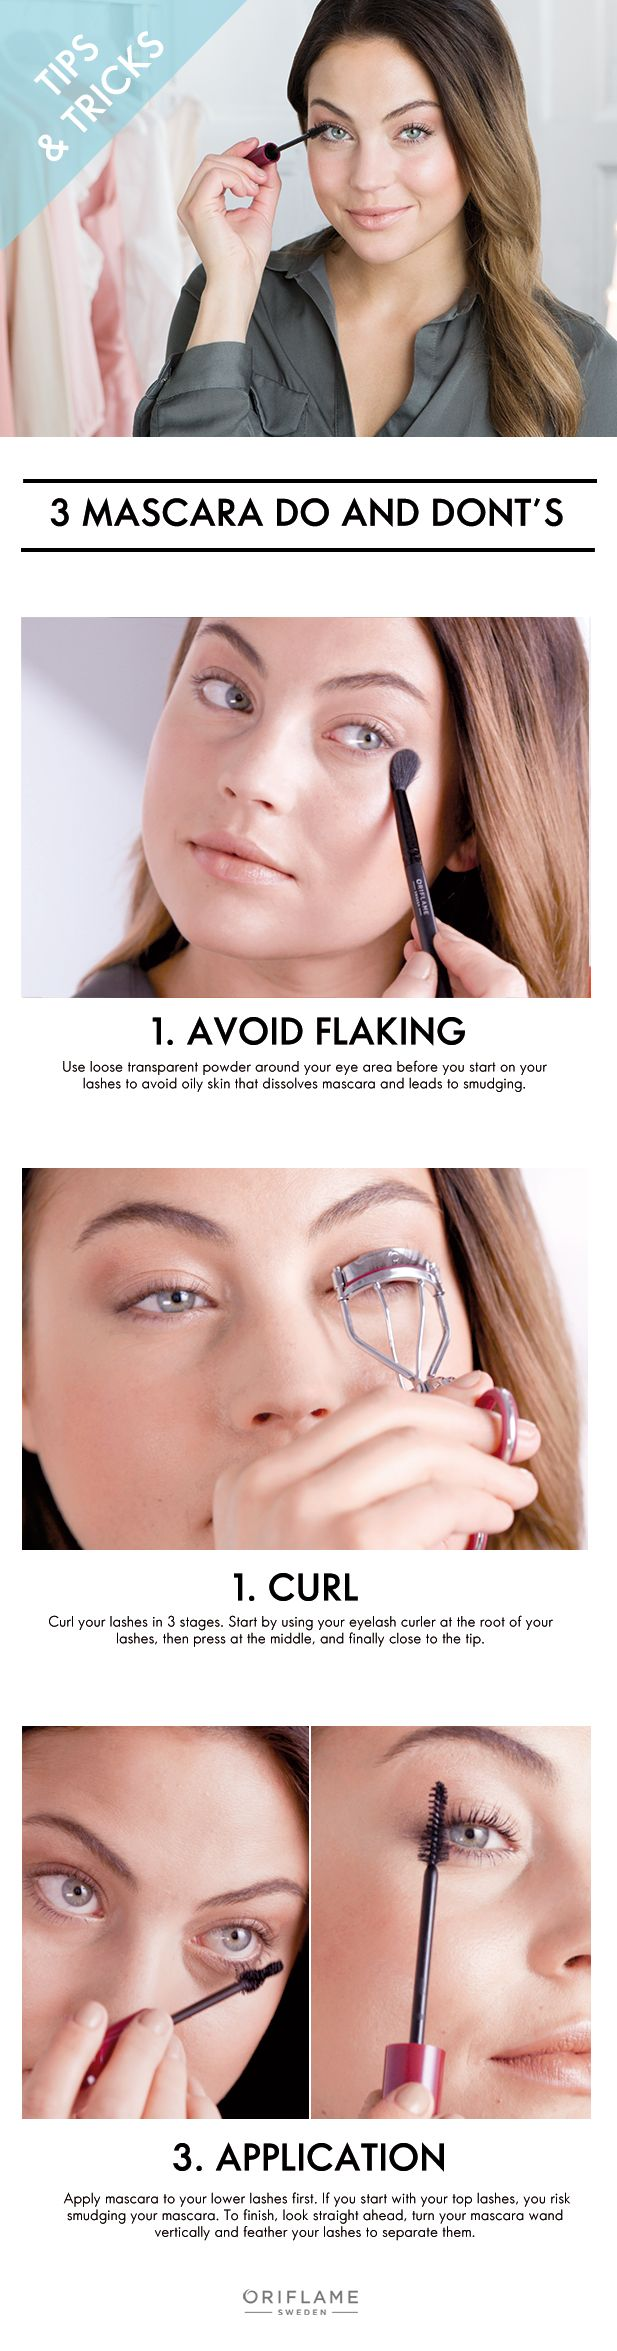 3 Mascara do's and don'ts! #oriflame #mascara #tips